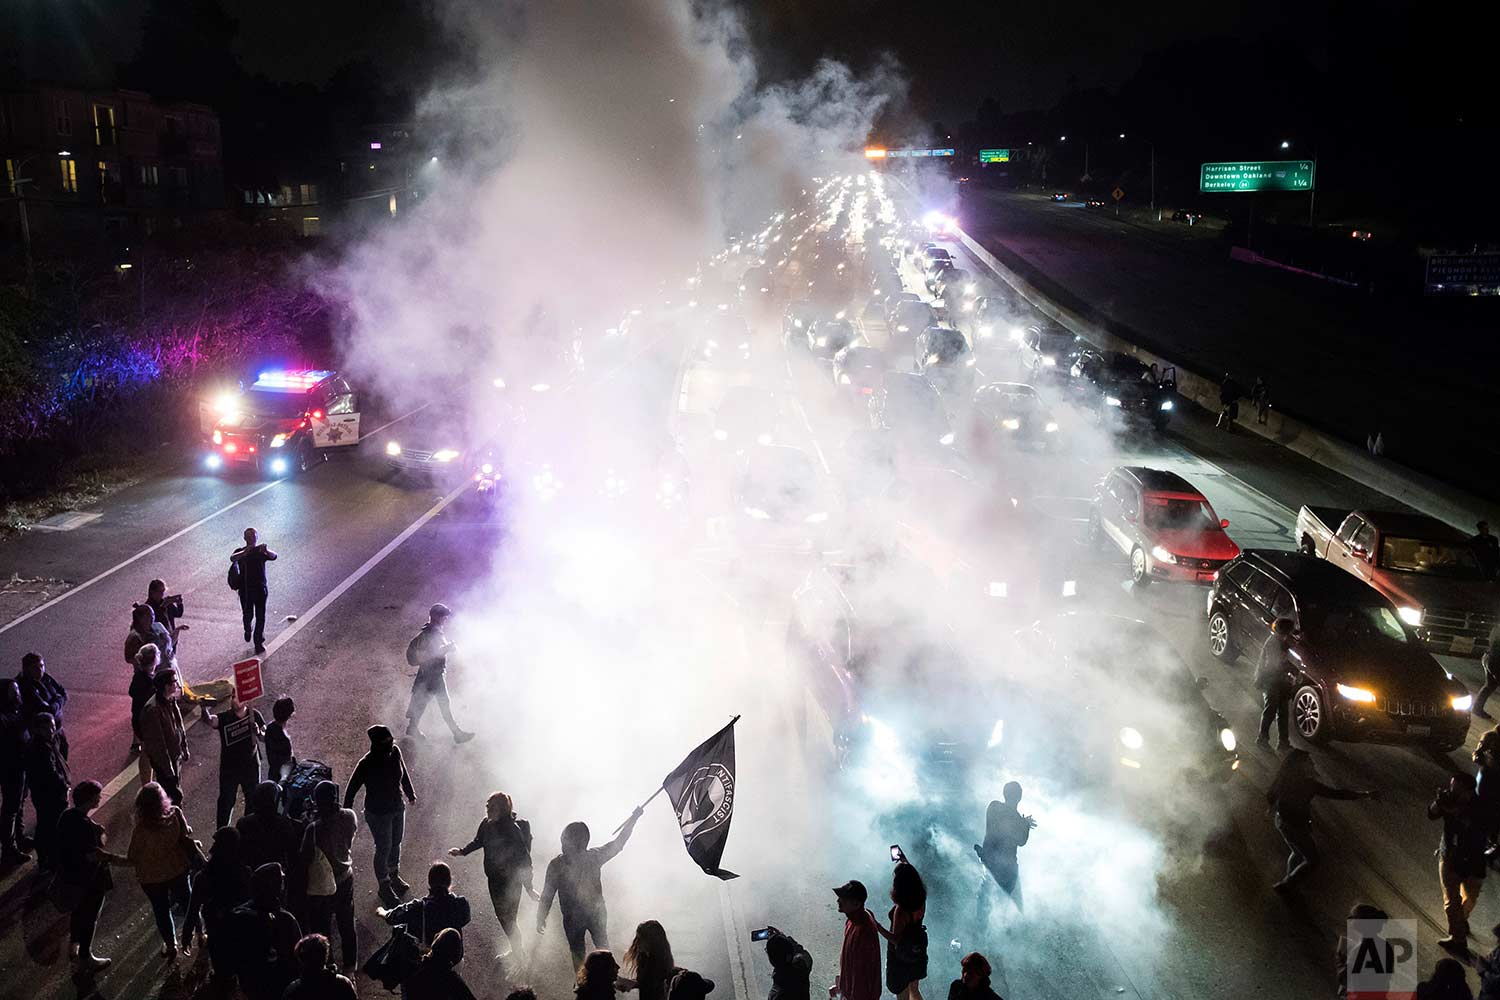 Protesters against racism block traffic for both directions of Interstate 580 in Oakland, Calif., Saturday, Aug. 12, 2017. (AP Photo/Noah Berger)